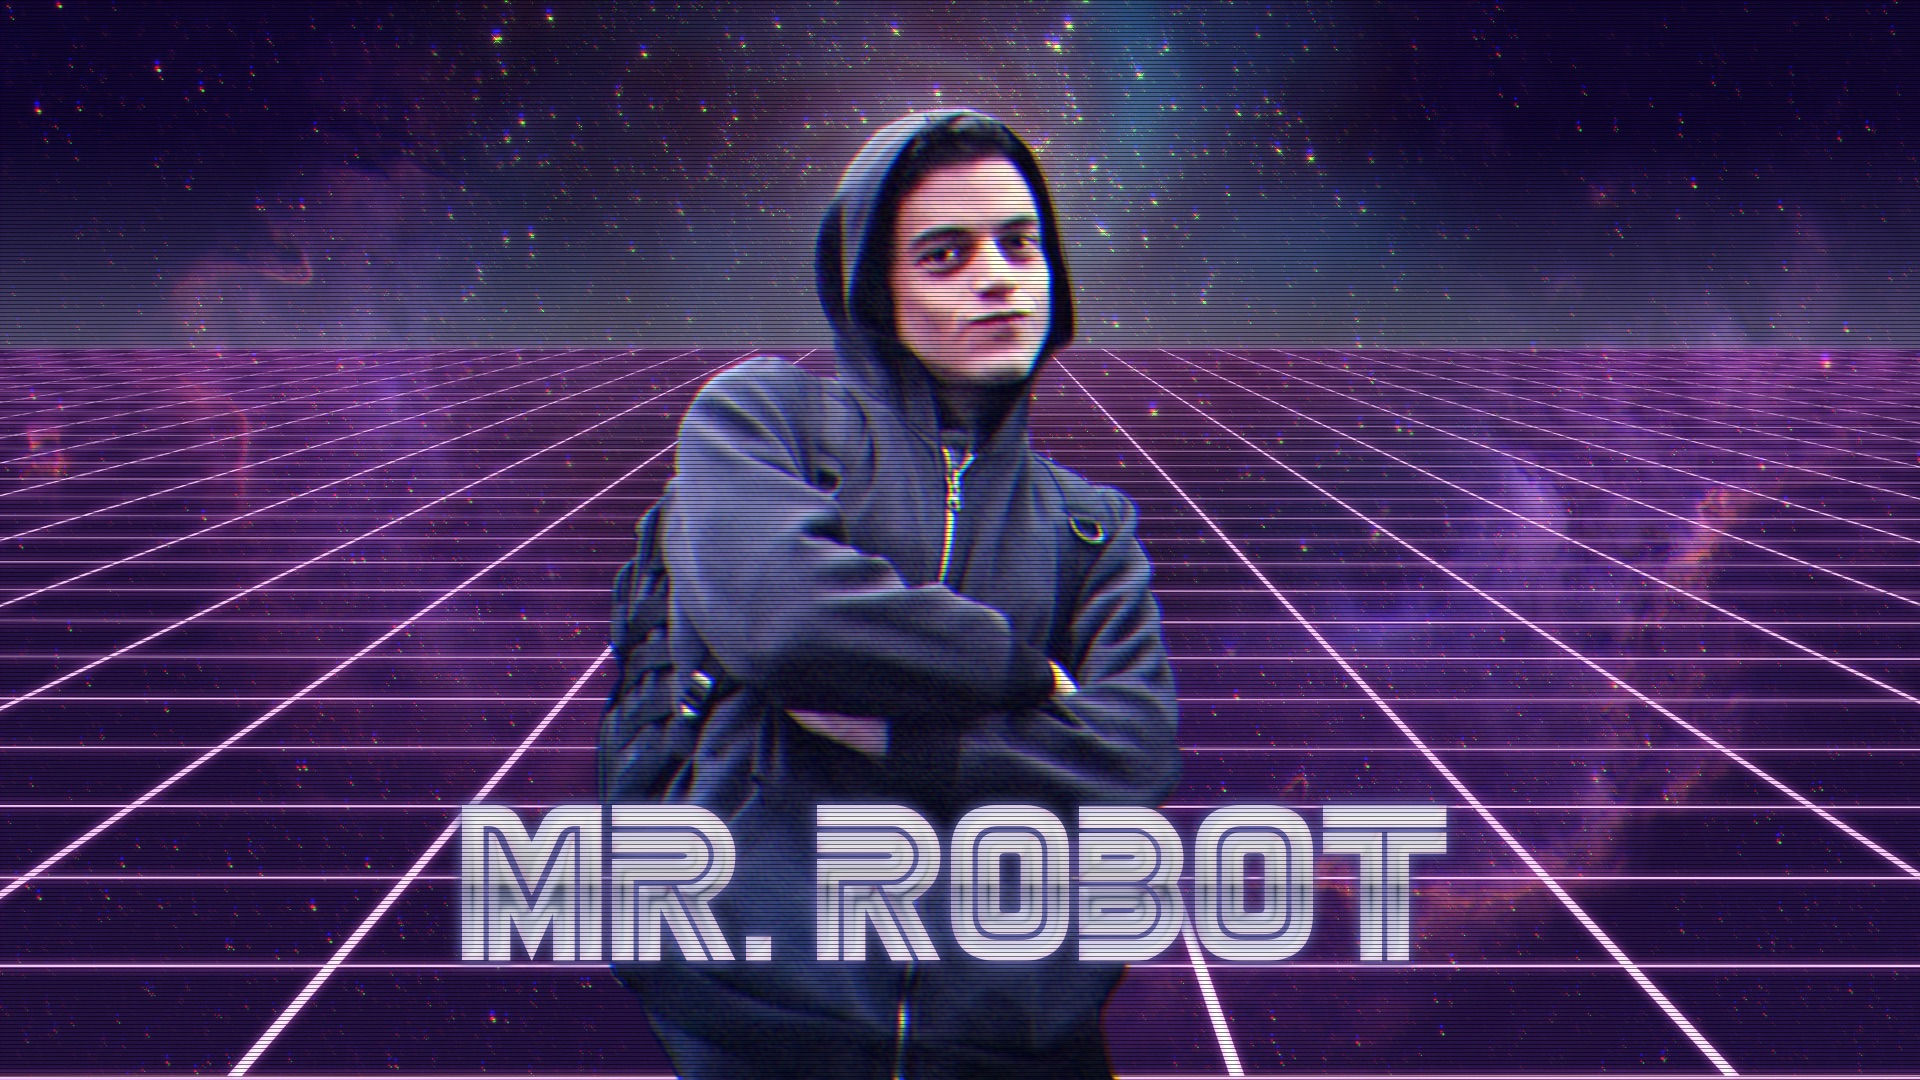 mr.-robot-wallpapers.jpg